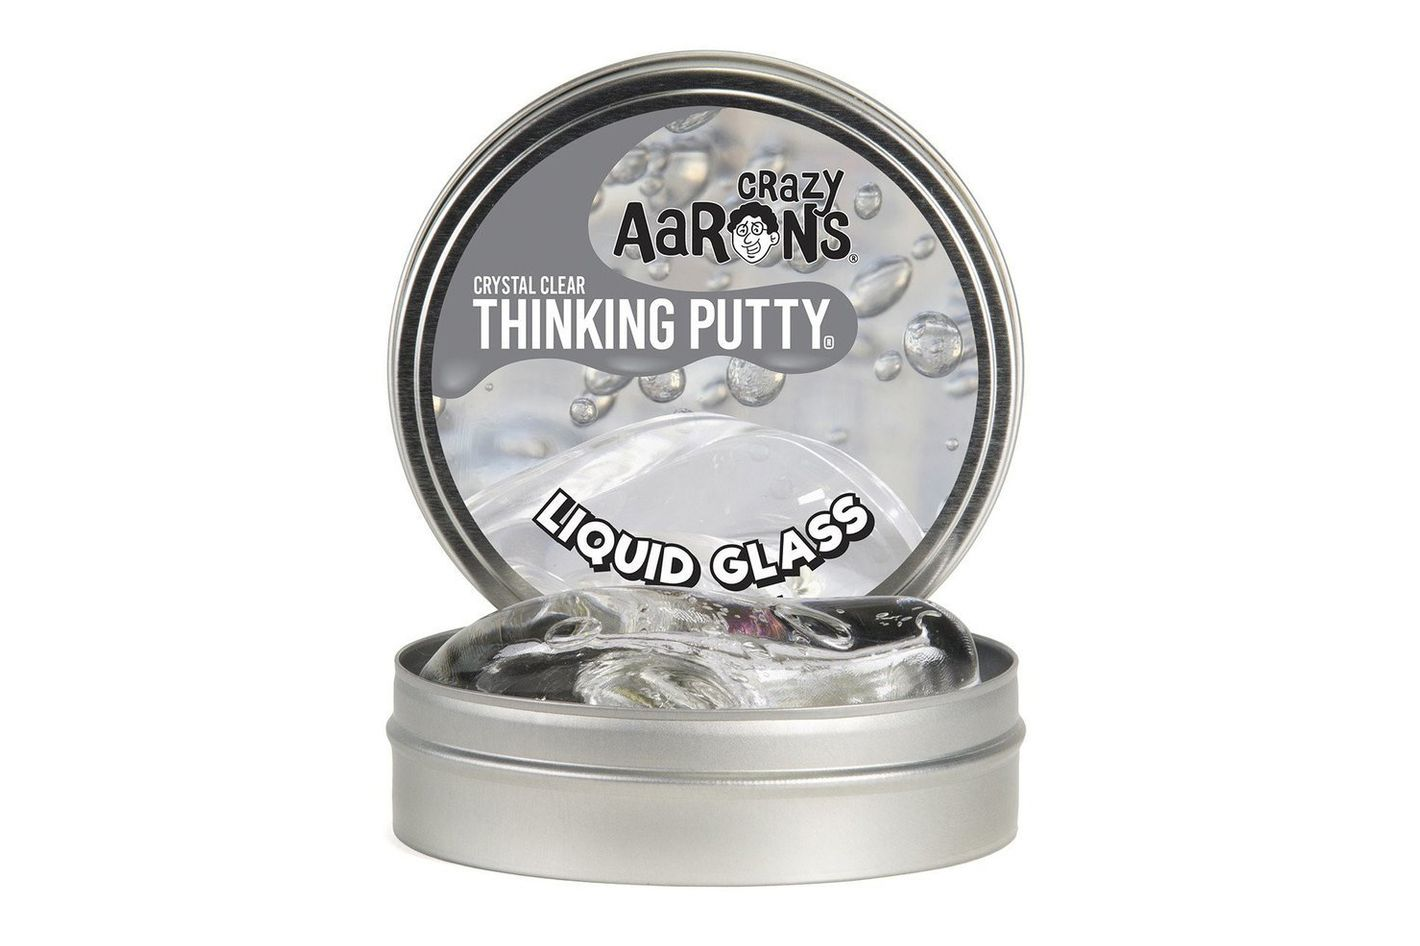 Crazy Aaron's Thinking Putty, 3.2 Ounce, Liquid Glass